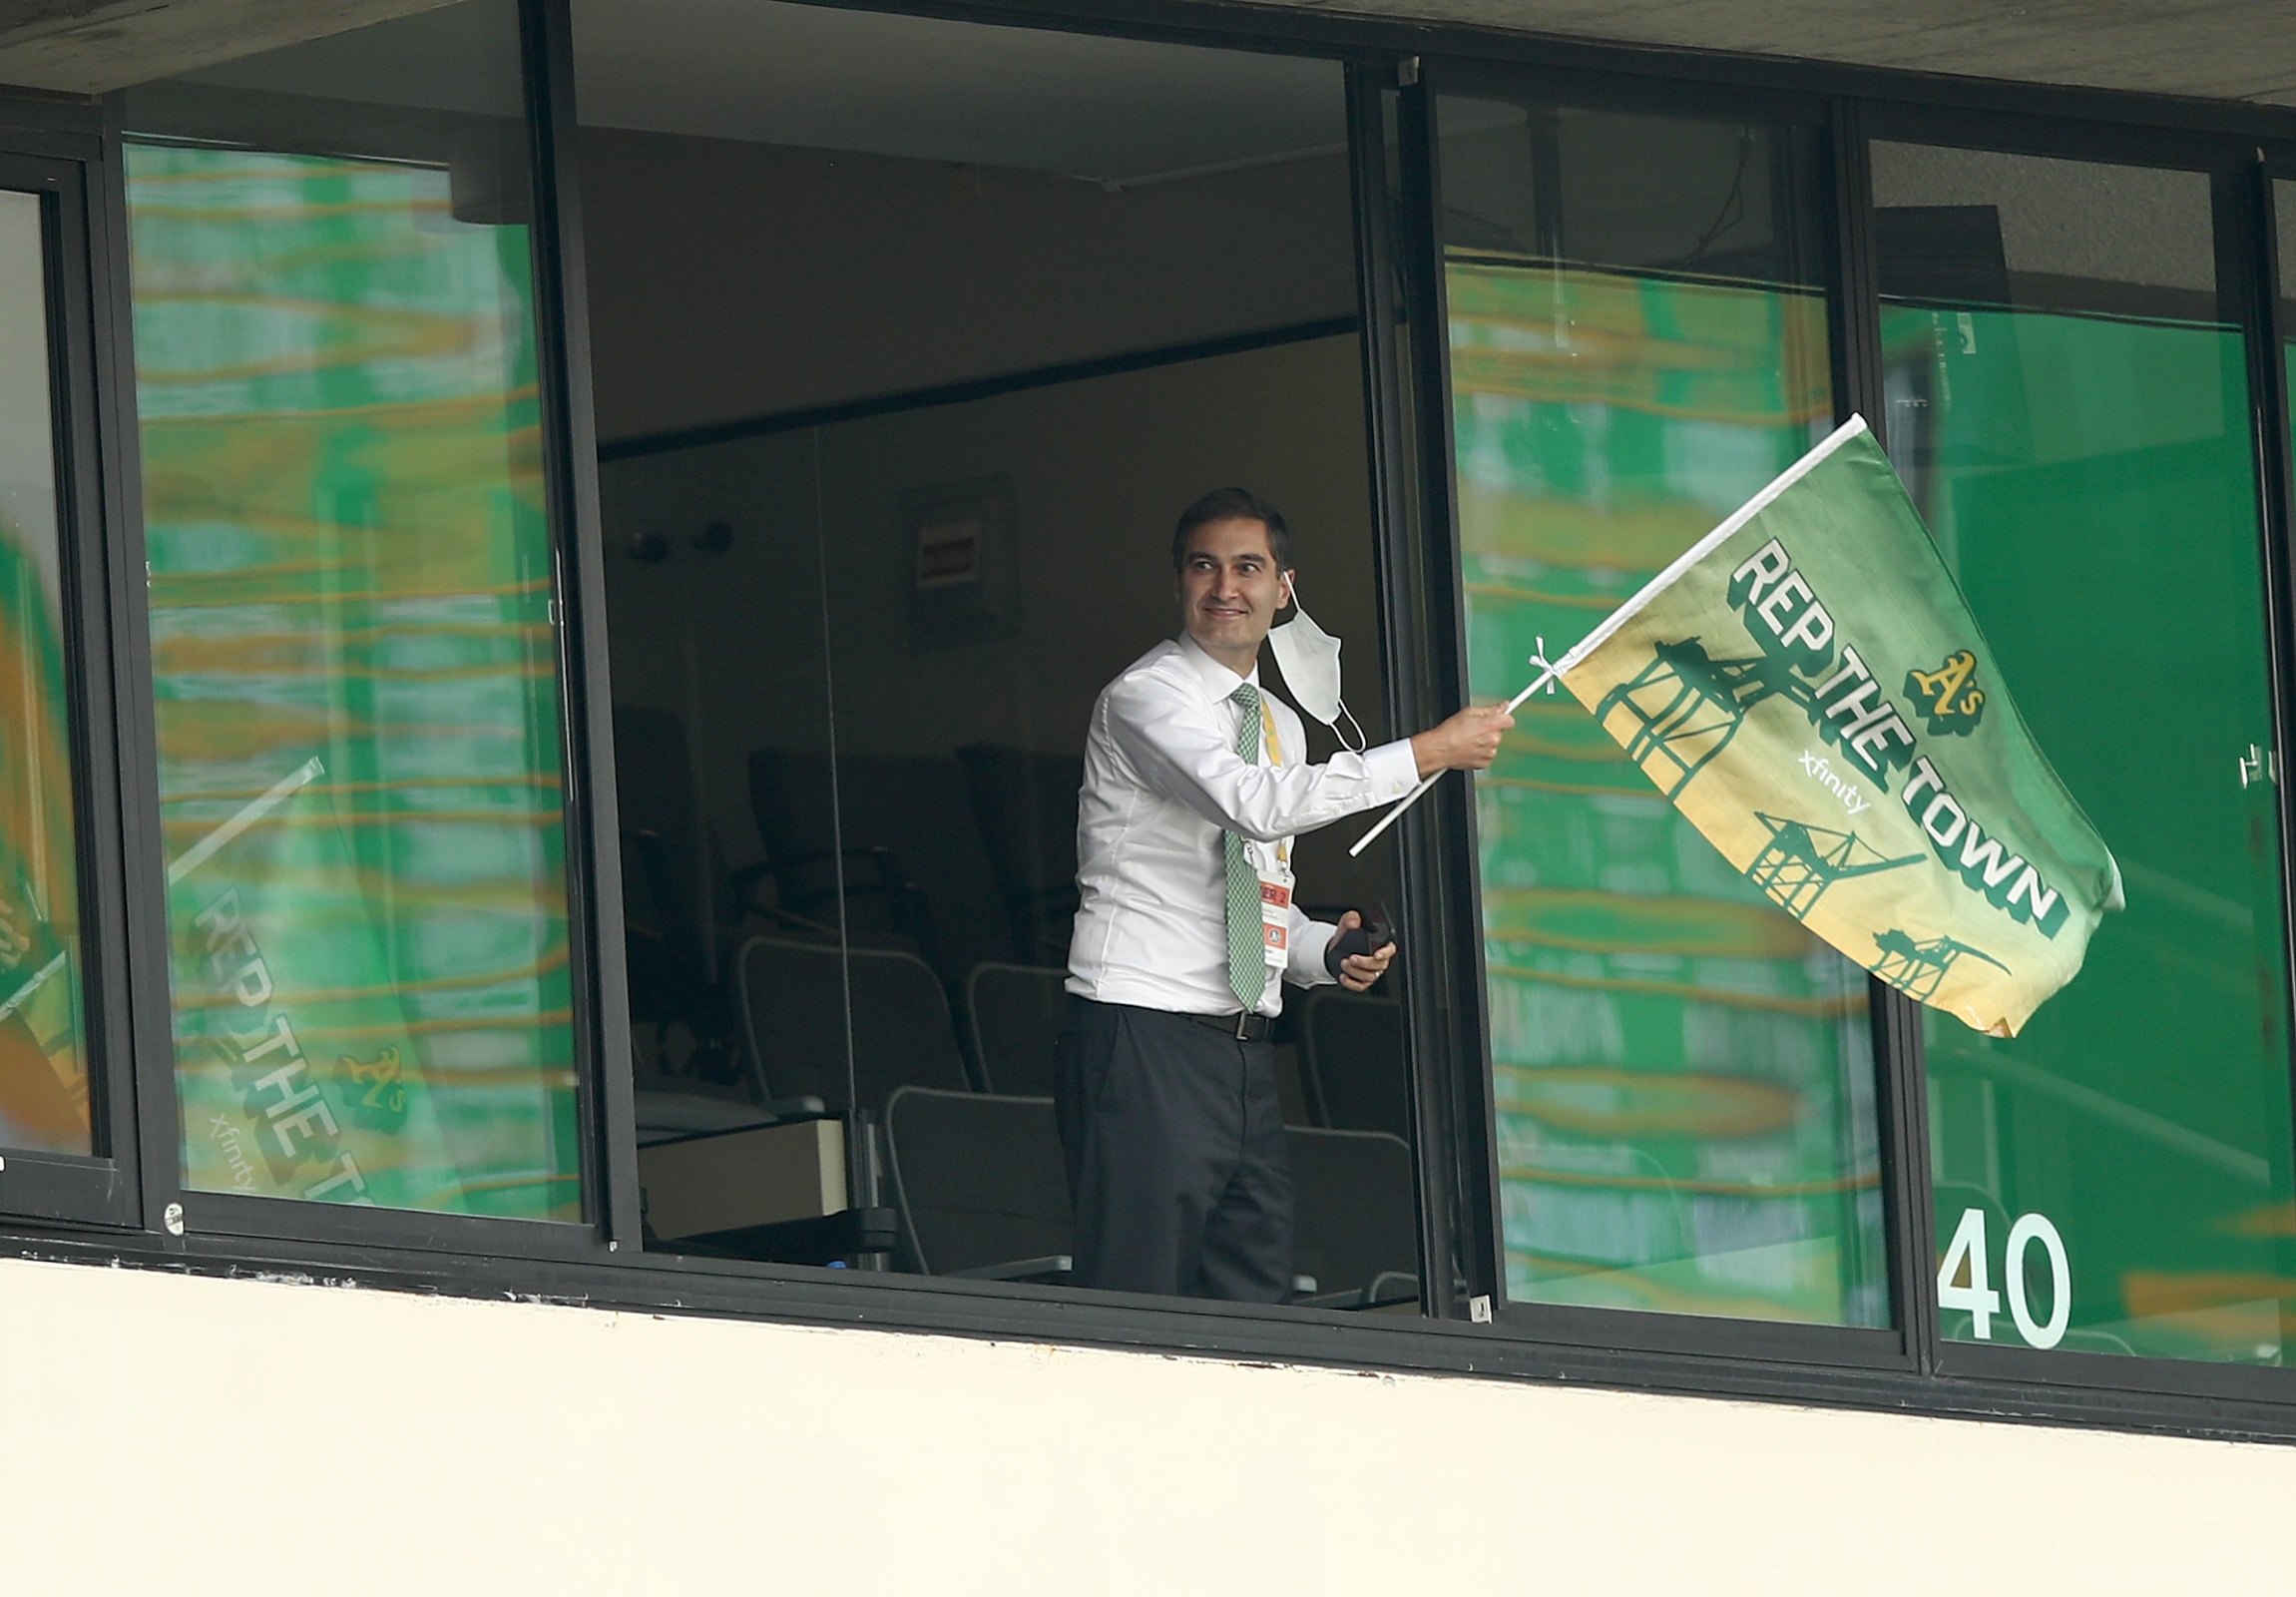 Oakland Athletics team president Dave Kaval waving his team's flag during the 2020 playoffs.